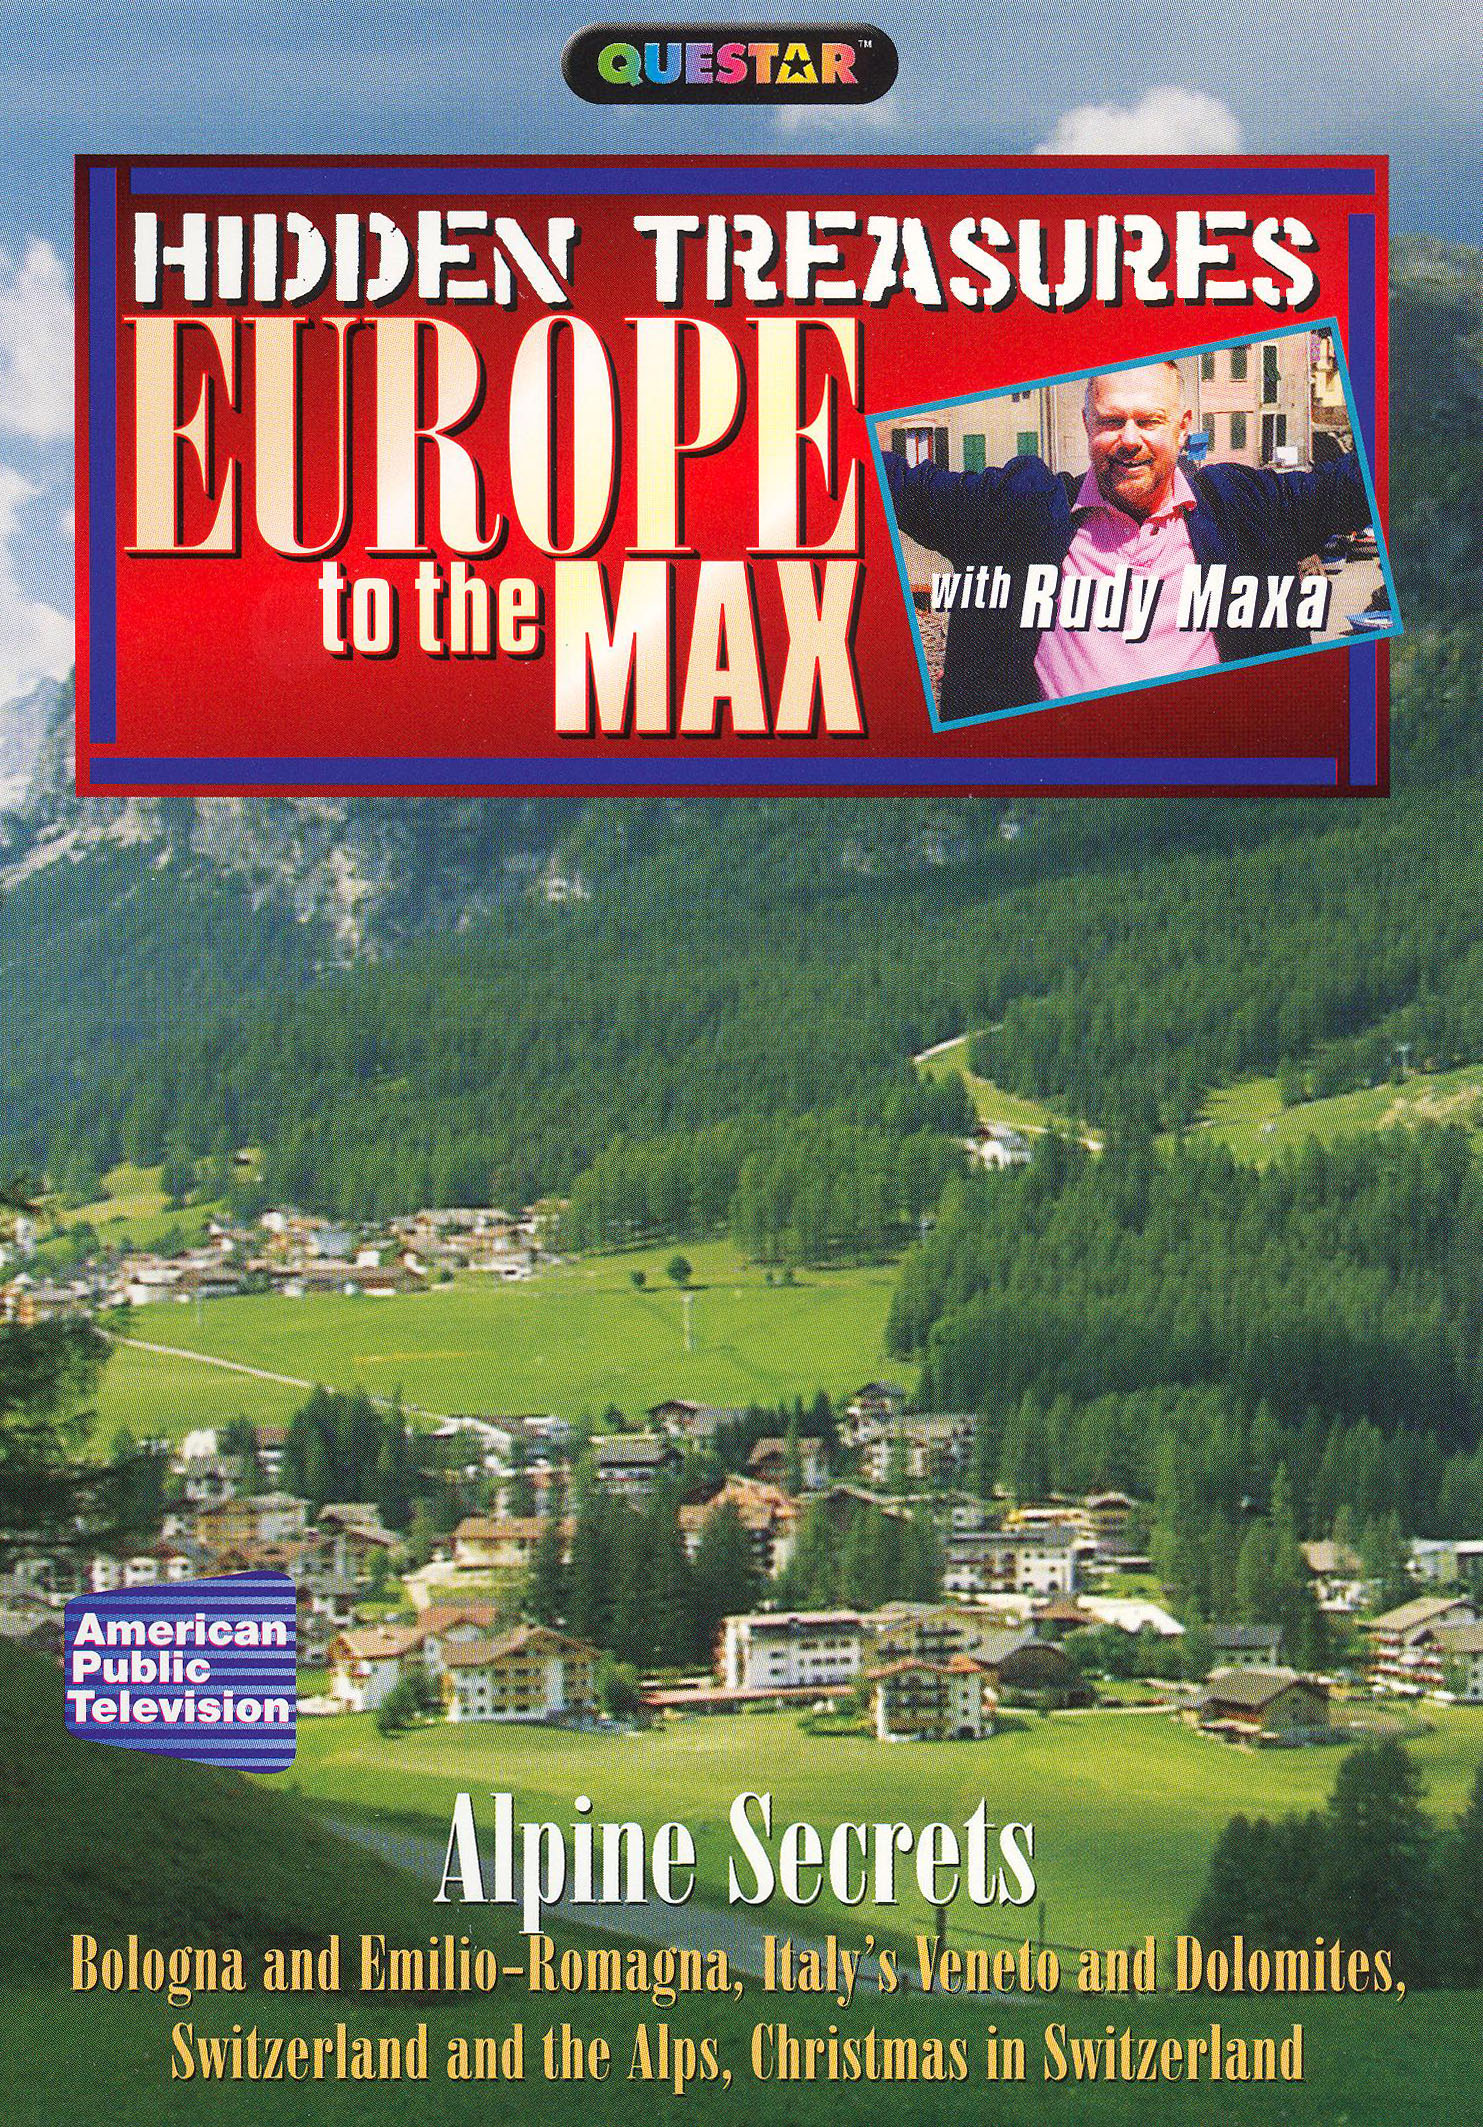 Rudy Maxa: Europe to the Max: Hidden Treasures - Alpine Secrets